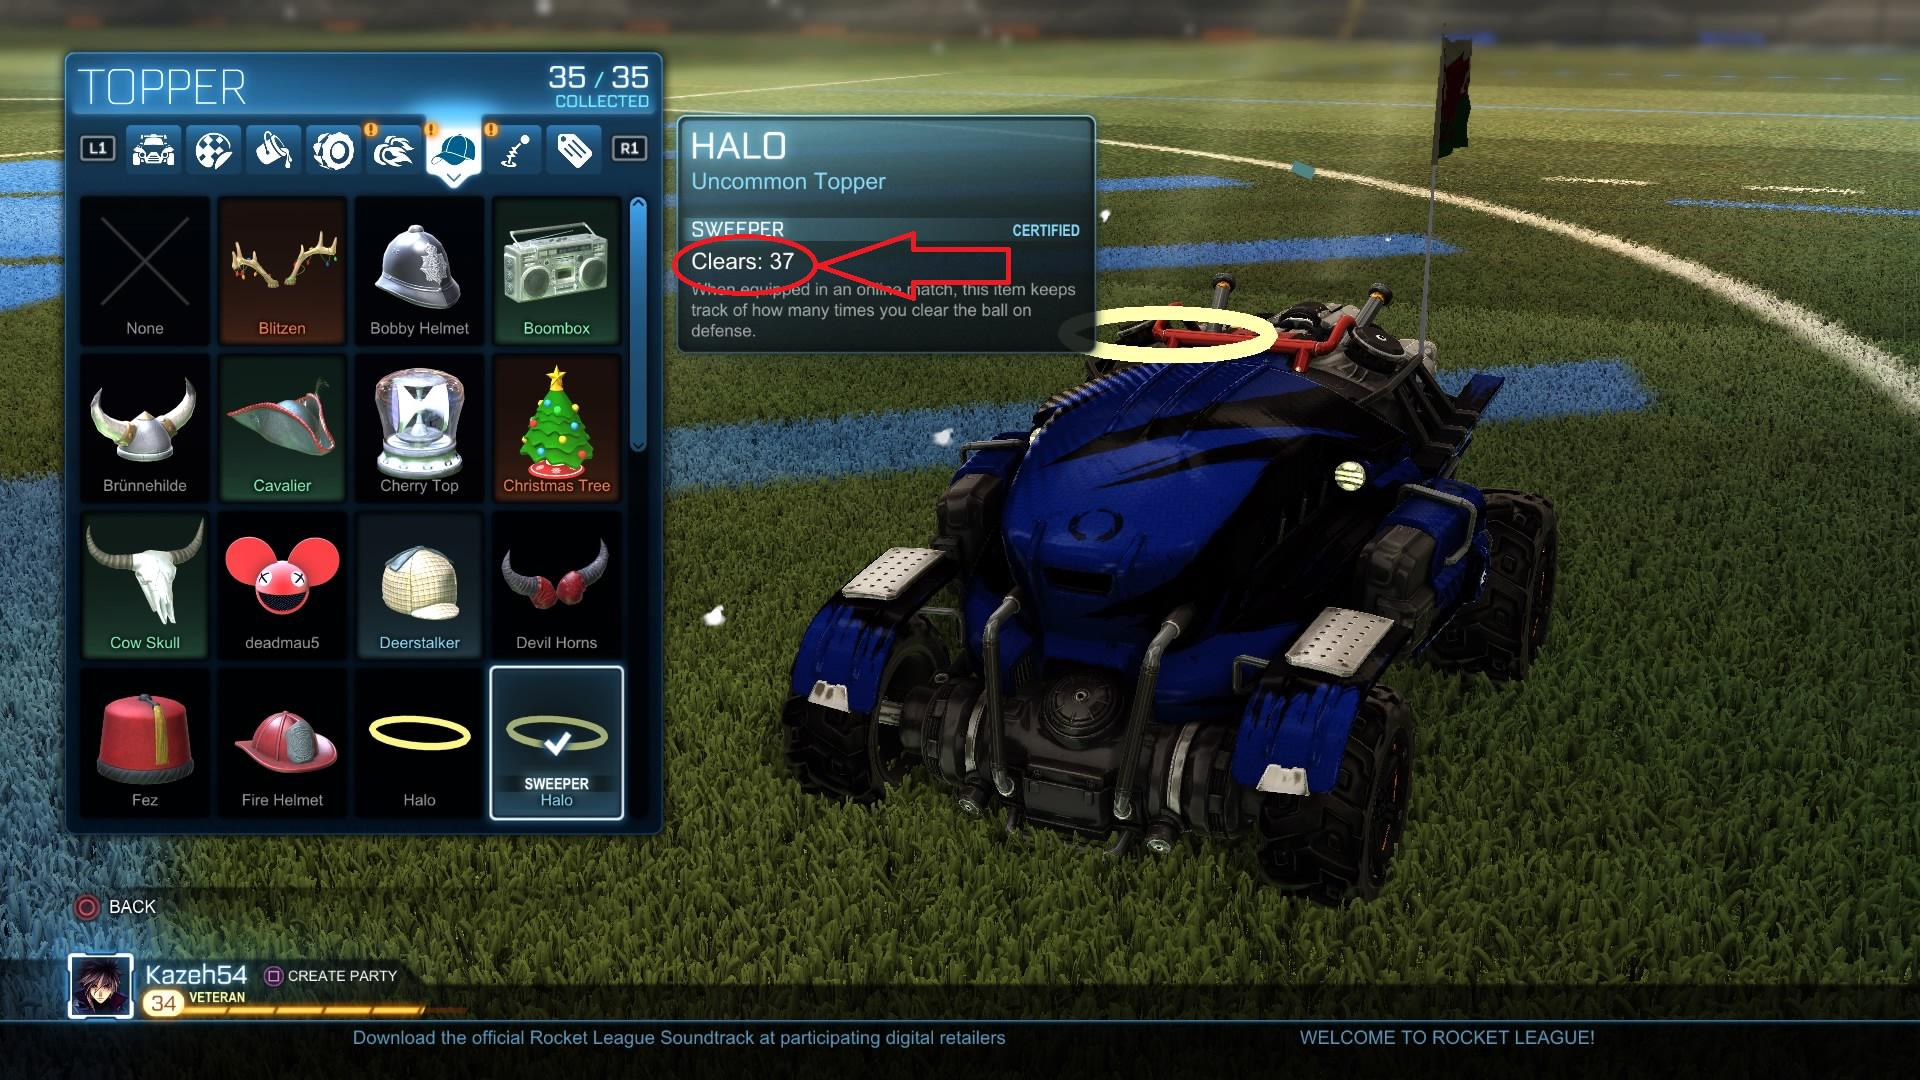 Rocketleague Garage Rocket League Neo Tokyo Dlc Trophy Guide Psnprofiles